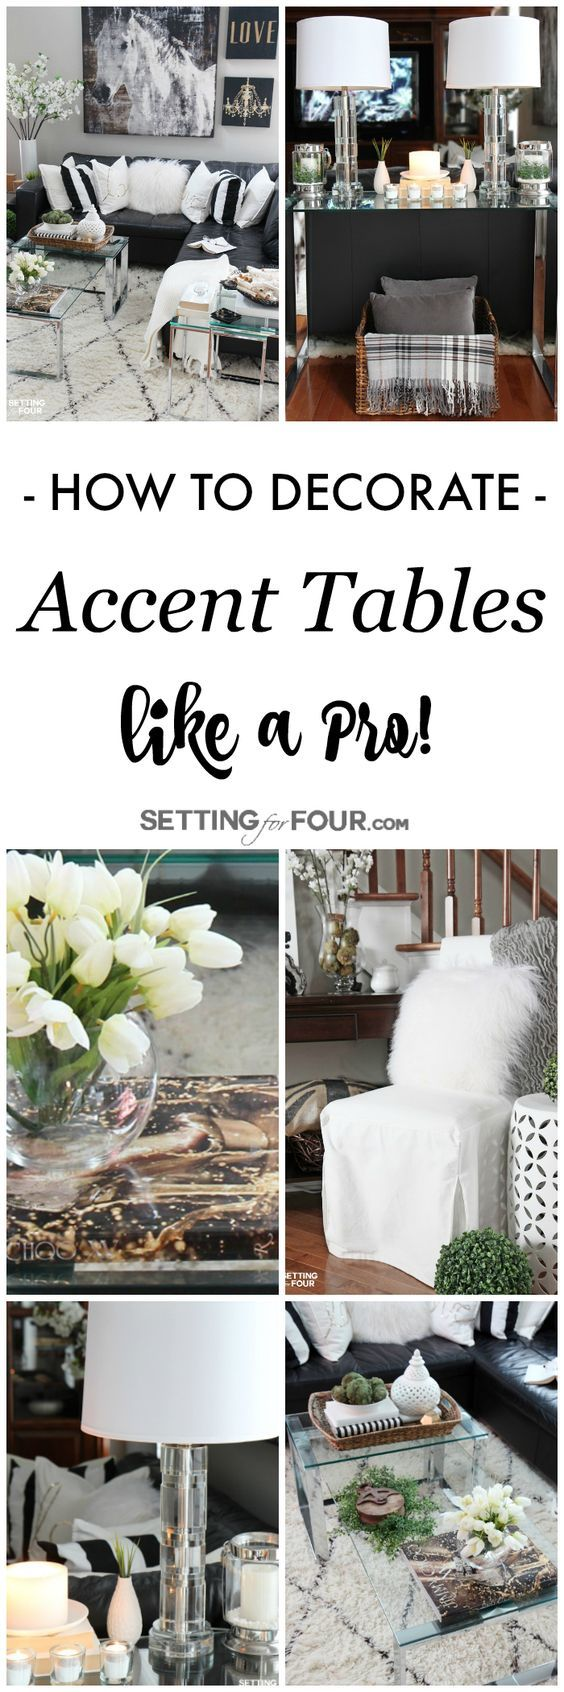 5 TIPS TO DECORATE ACCENT TABLES LIKE A PRO! | PINS I LOVE ...